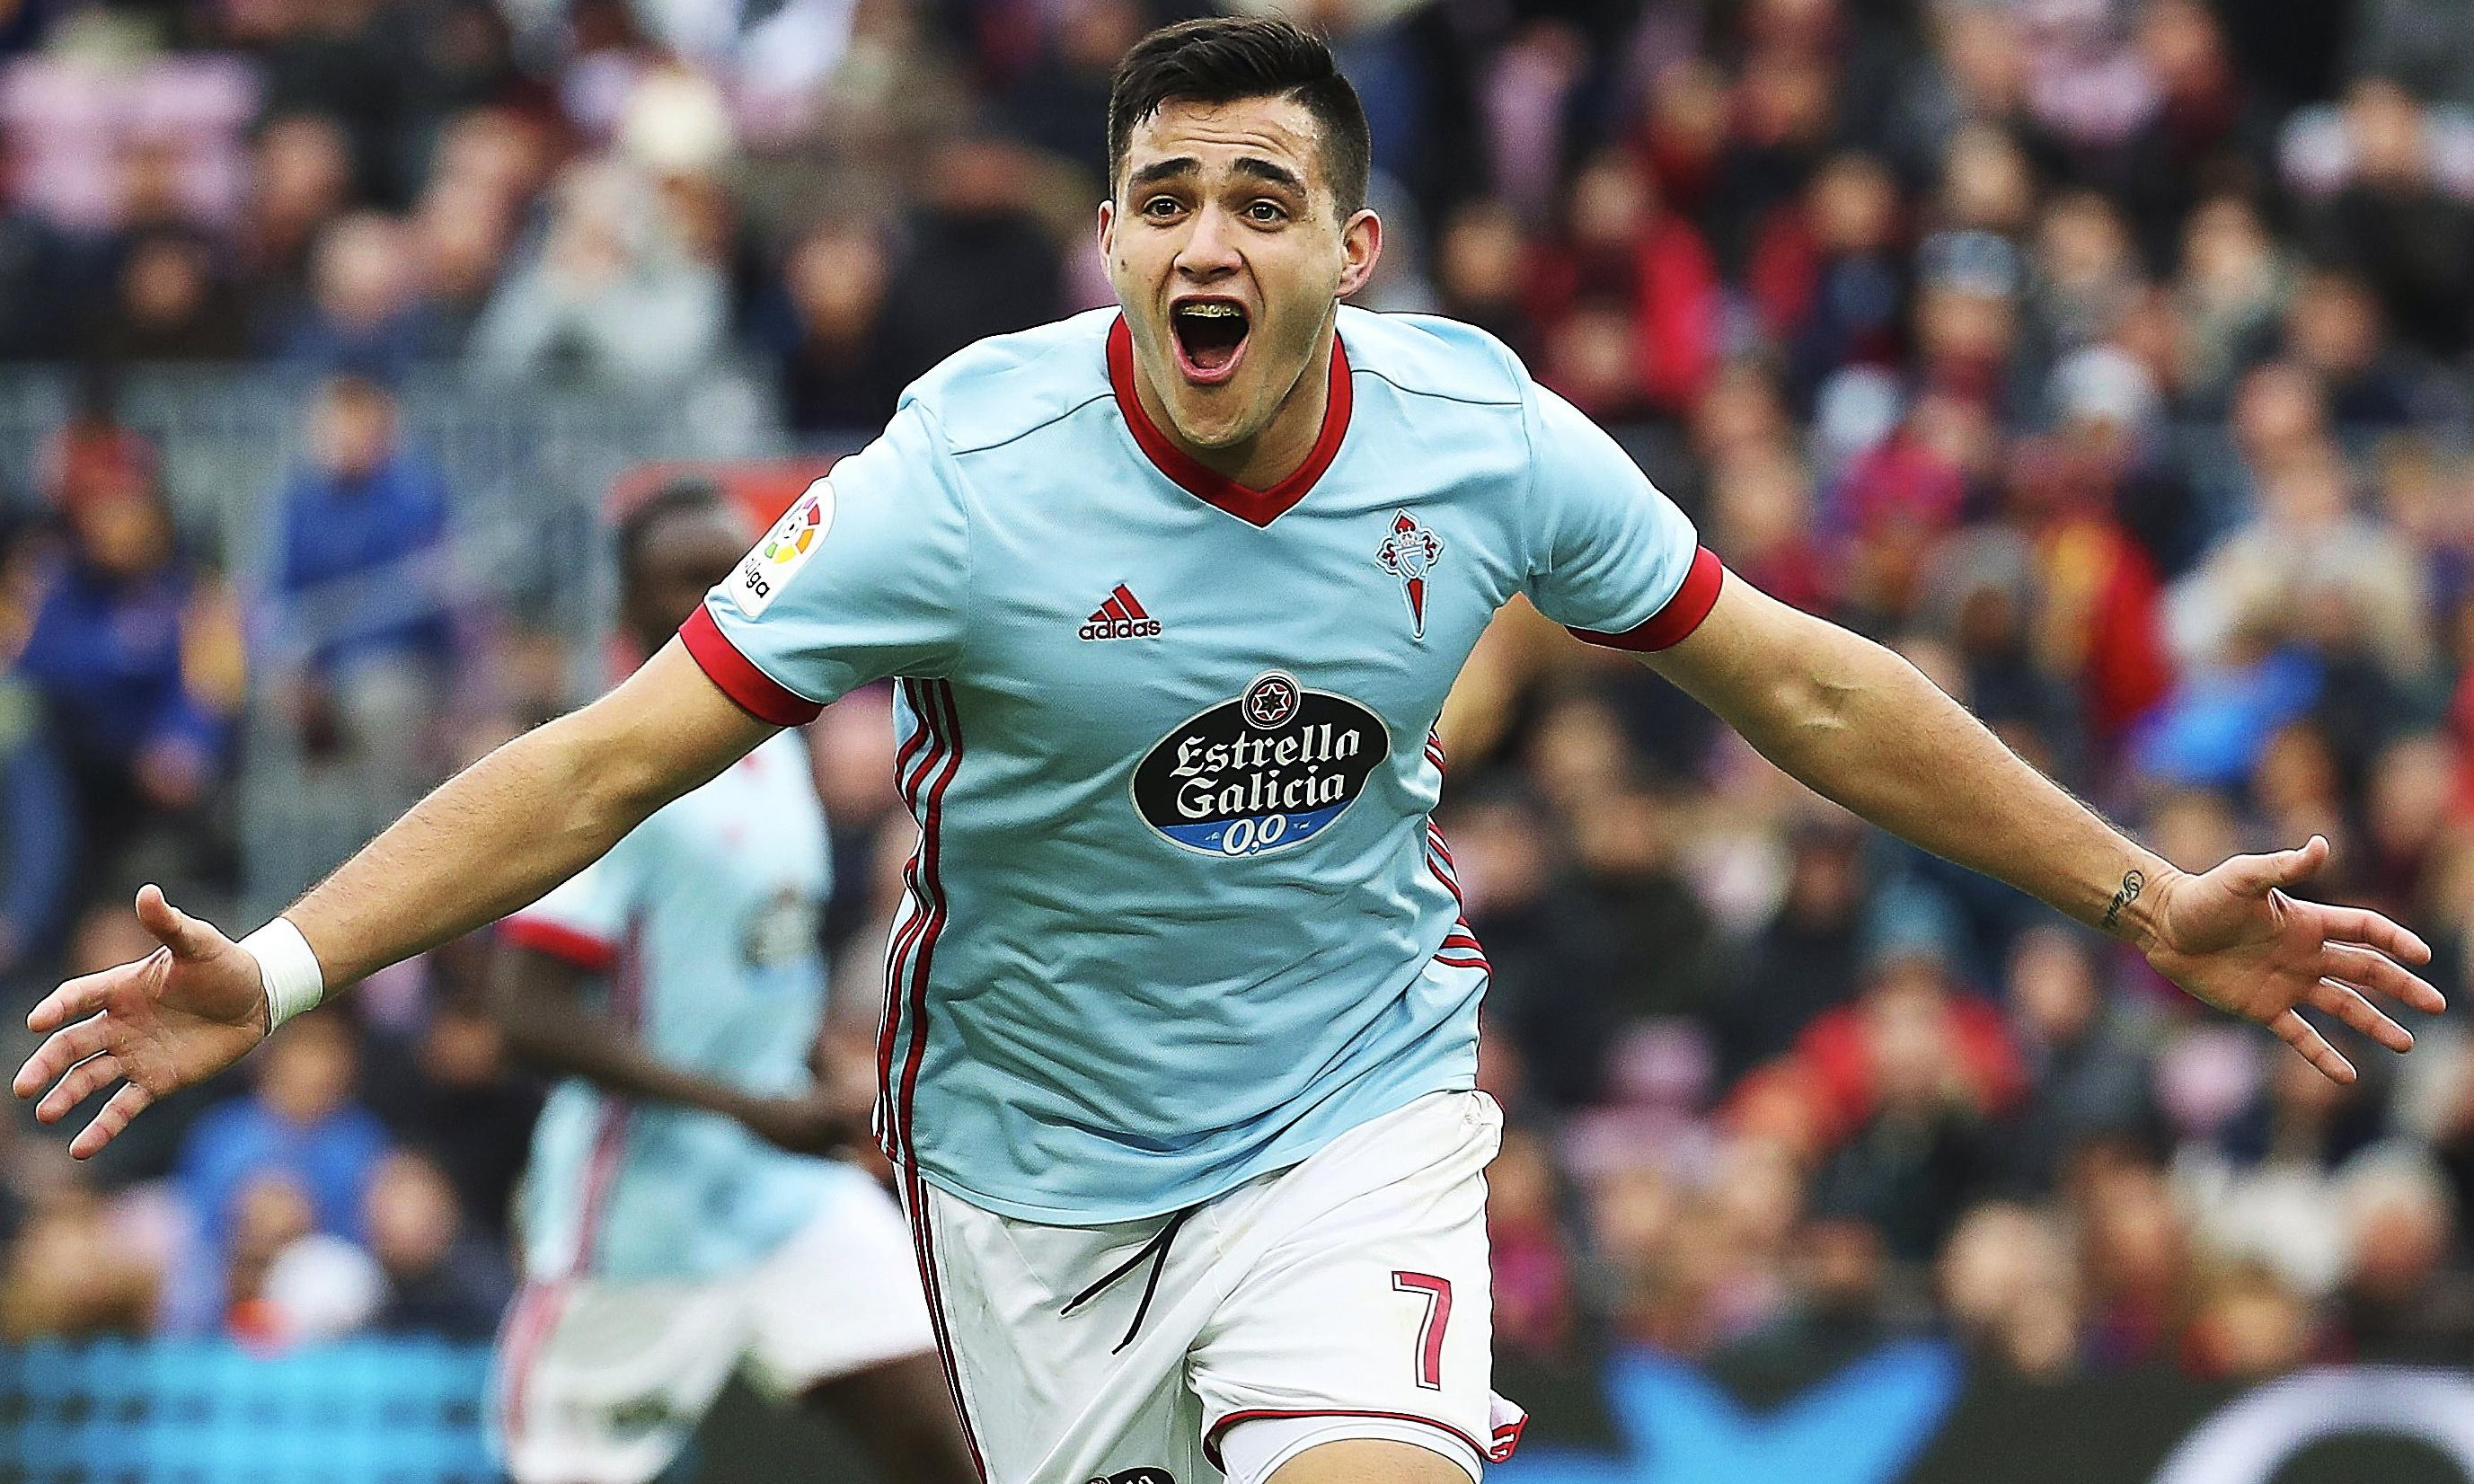 West Ham fear missing out to Valencia in race for Celta Vigo's Maxi Gómez